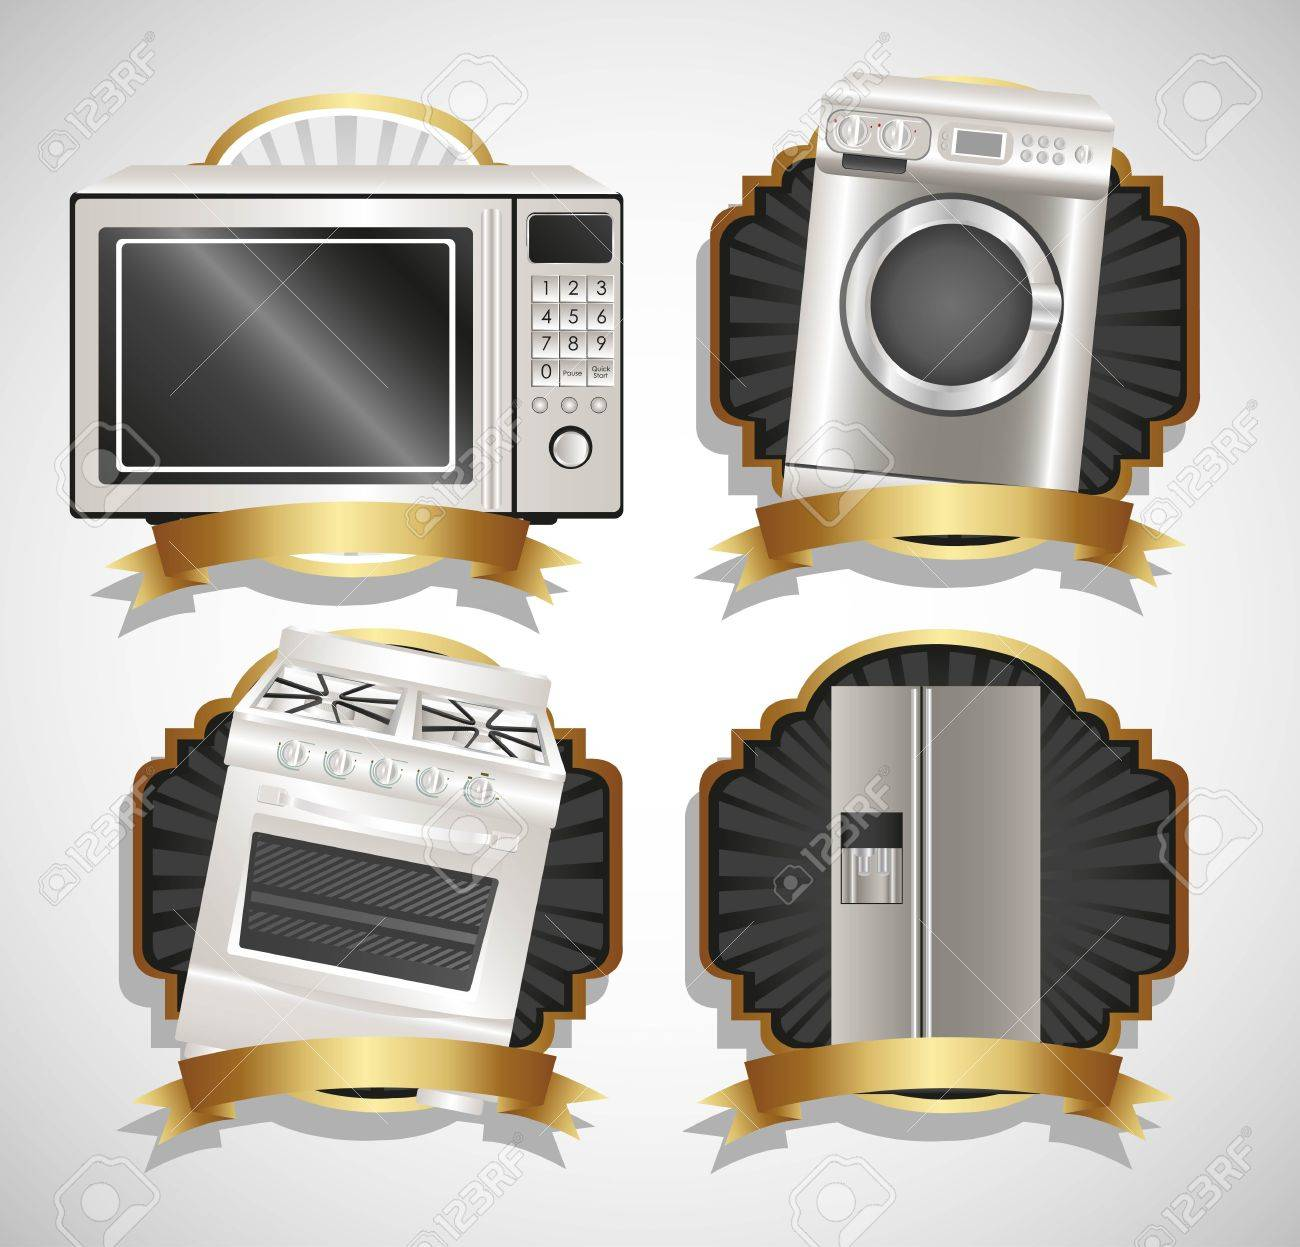 Set of Appliances, contains washing machine, stove, microwave and refrigerator Stock Vector - 14083181